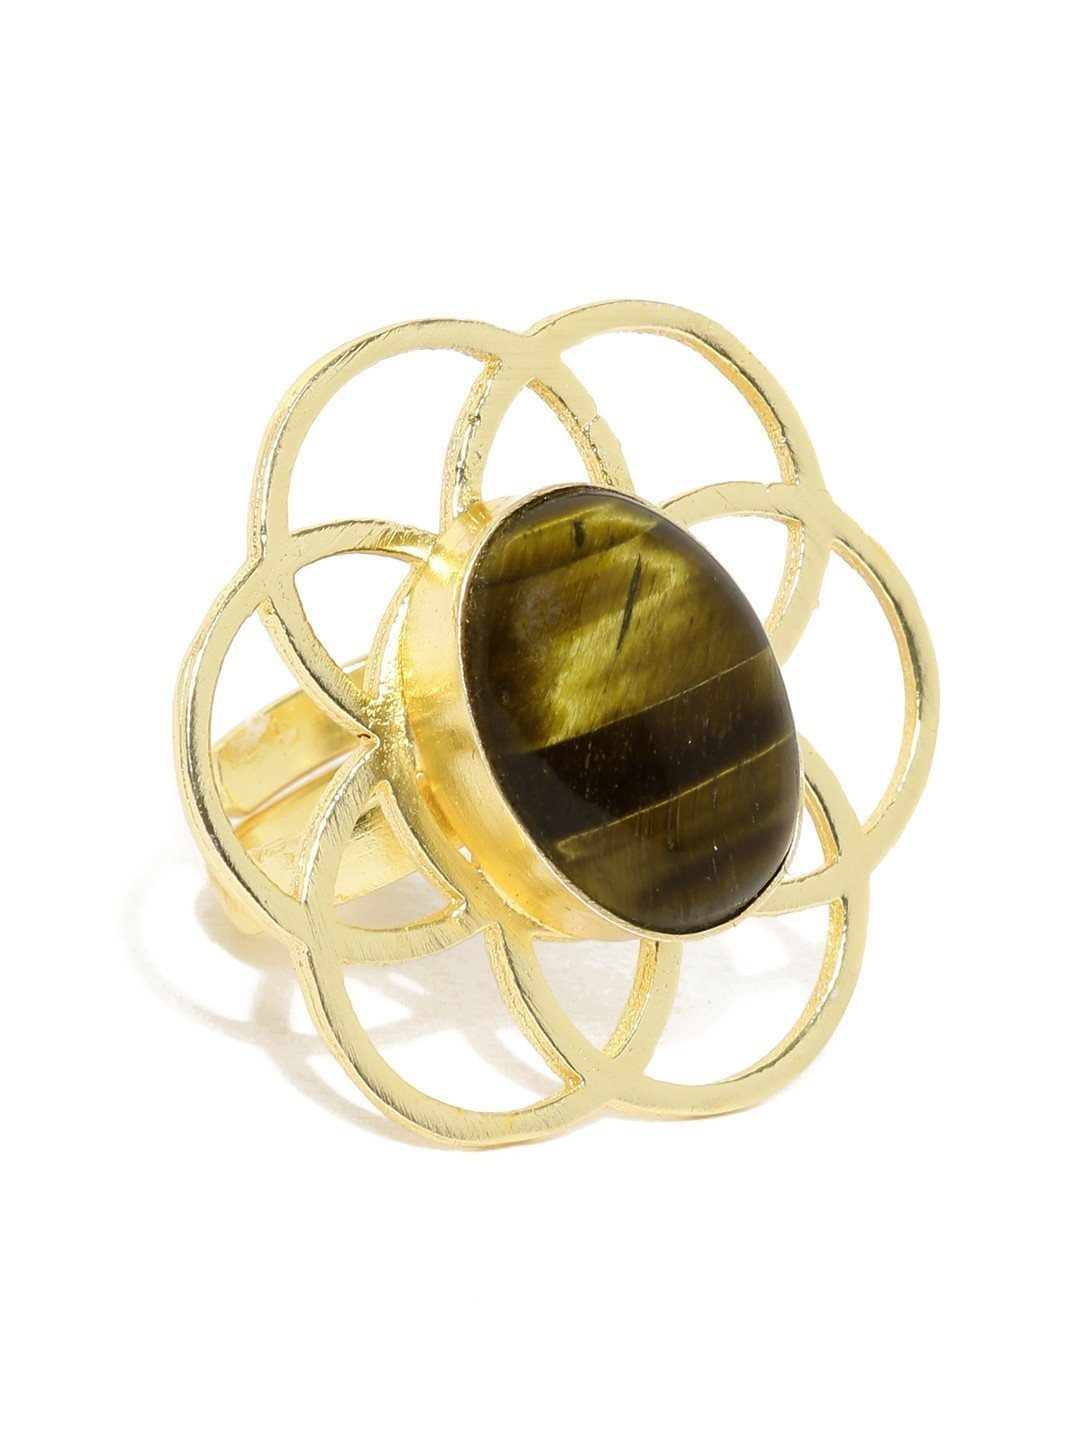 Semi Precious Tigher-Iron Splendid Finger Ring - Zpfk5770